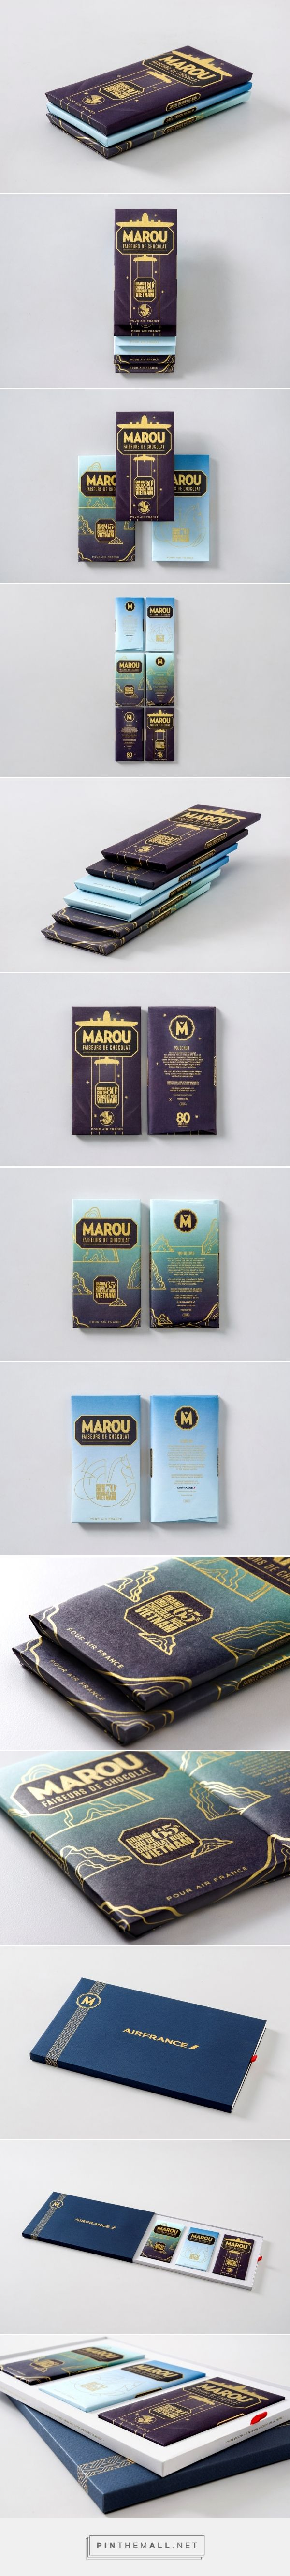 "Marou Chocolate for Air France ""Air France approached Marou Chocolate to commission a specially designed Marou chocolate bar for their annual charity gala. The theme would be celebrating the Paris to Saigon route. A connected 3 bar set which draws inspiration from the extraordinary graphic history of Air France, the wonders of Vietnam, and that silky smooth ride in the sky at 30,000 ft."""